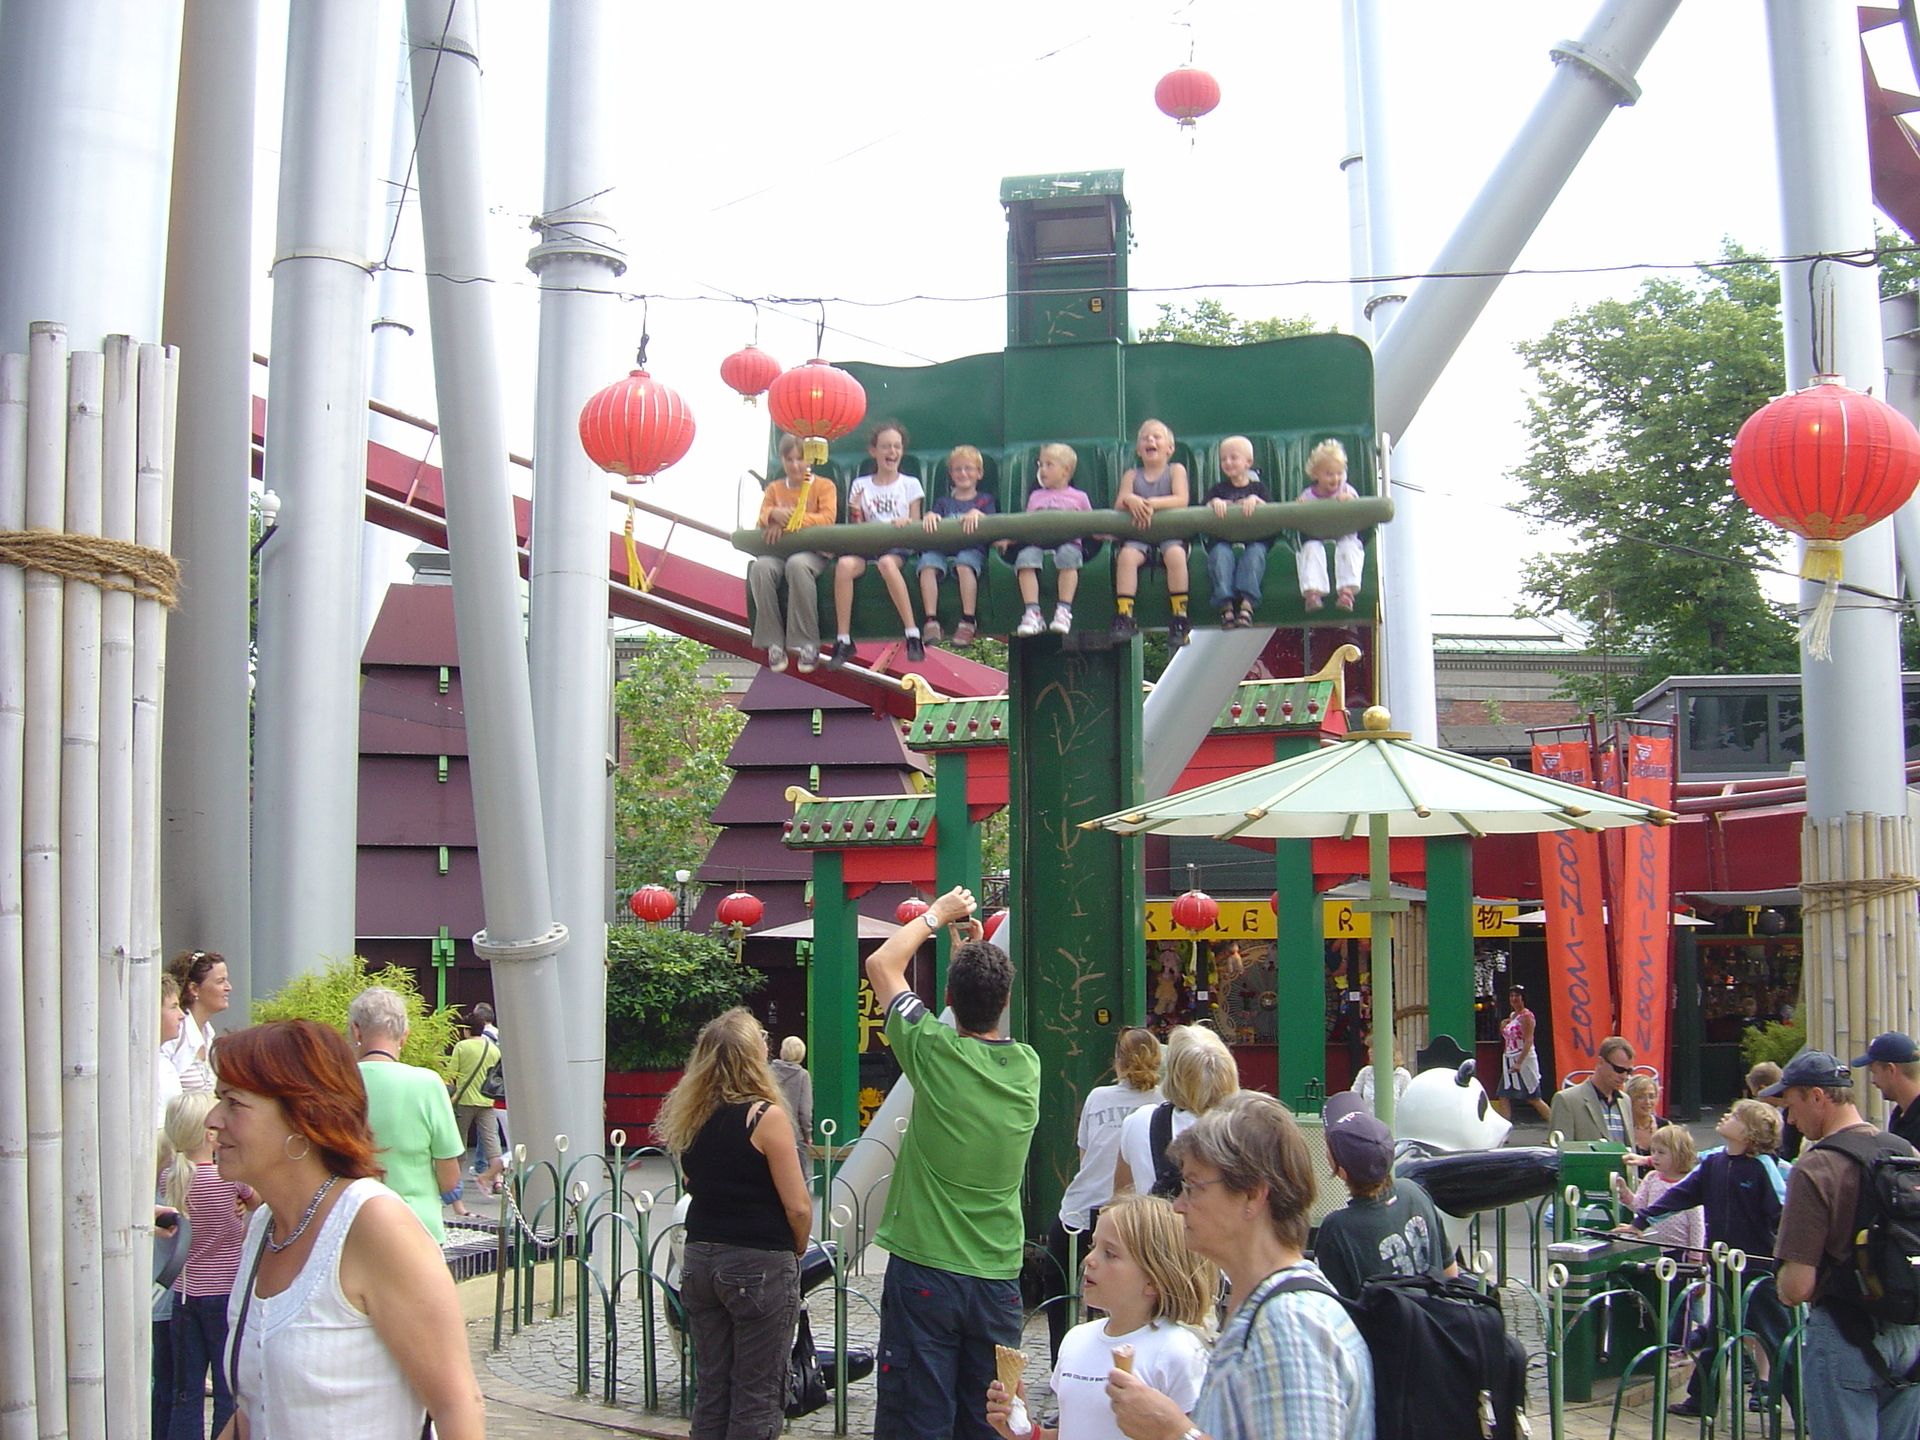 Tivoli Denmark English Tivoli Gardens Denmark Photo 557278 Fanpop